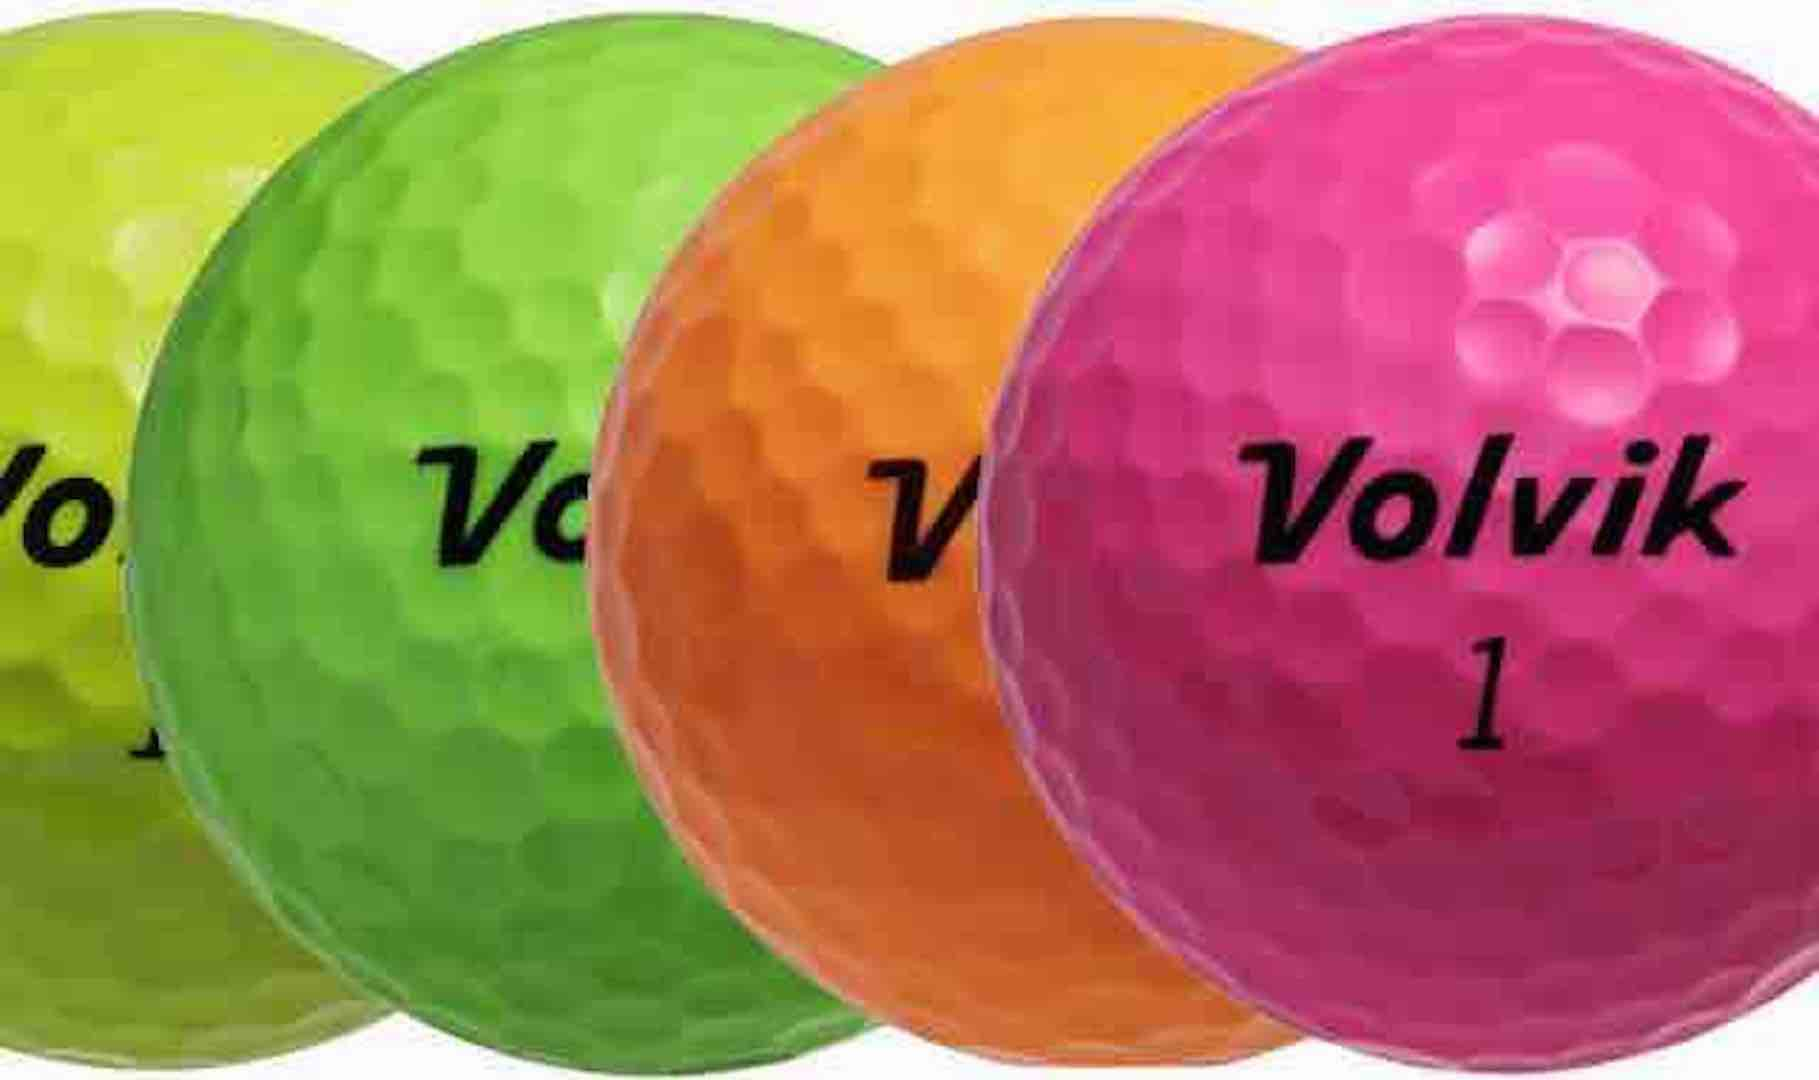 Is Bubba going to be using pink and green balls?